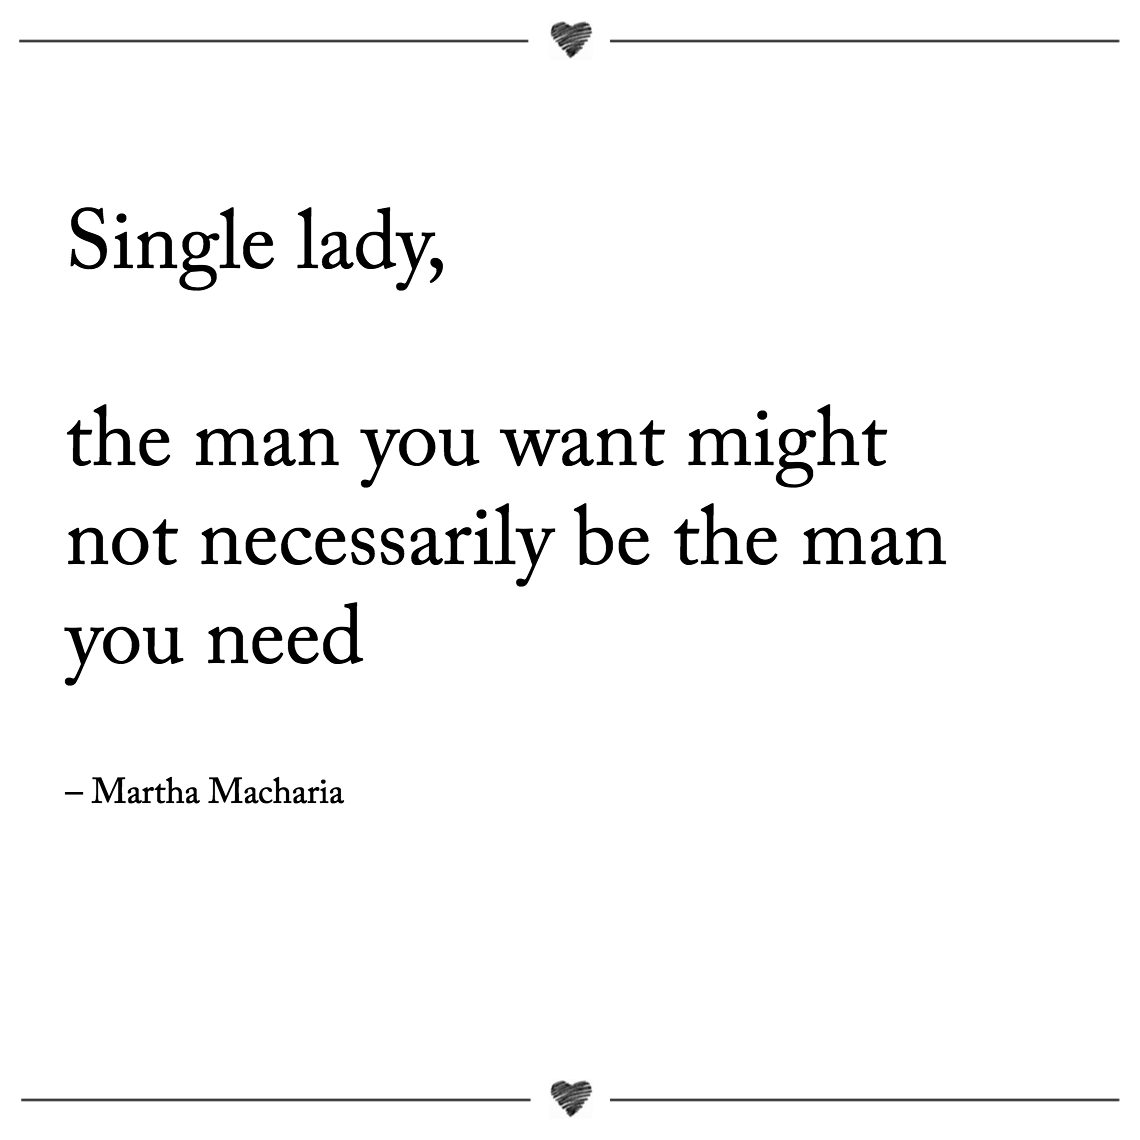 Single lady, the man you want might not necessarily be the man you need martha macharia (1)